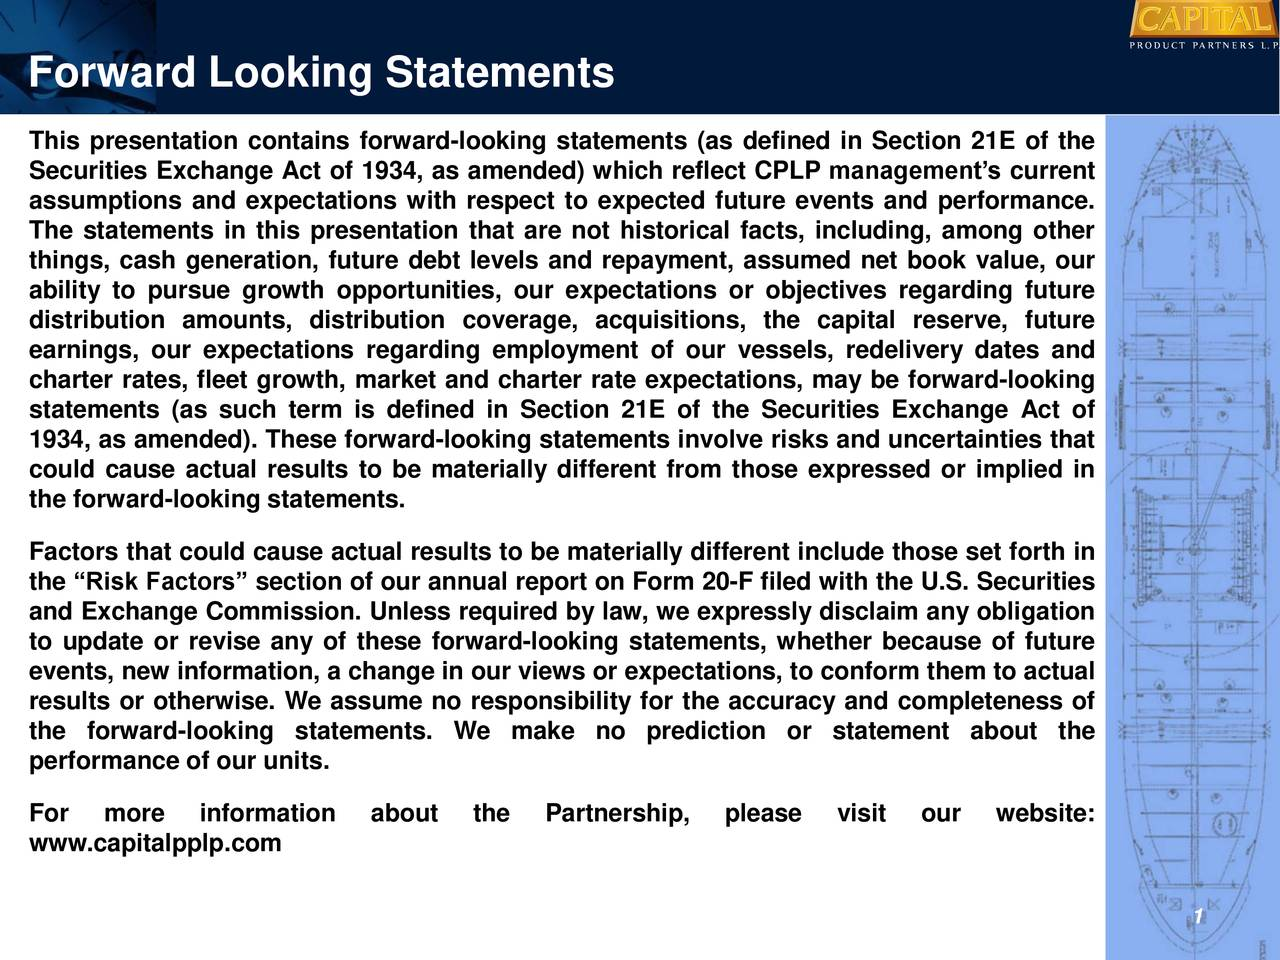 "This presentation contains forward-looking statements (as defined in Section 21E of the Securities Exchange Act of 1934, as amended) which reflect CPLP management's current assumptions and expectations with respect to expected future events and performance. The statements in this presentation that are not historical facts, including, among other things, cash generation, future debt levels and repayment, assumed net book value, our ability to pursue growth opportunities, our expectations or objectives regarding future distribution amounts, distribution coverage, acquisitions, the capital reserve, future earnings, our expectations regarding employment of our vessels, redelivery dates and charter rates, fleet growth, market and charter rate expectations, may be forward-looking statements (as such term is defined in Section 21E of the Securities Exchange Act of 1934, as amended). These forward-looking statements involve risks and uncertainties that could cause actual results to be materially different from those expressed or implied in the forward-looking statements. Factors that could cause actual results to be materially different include those set forth in the ""Risk Factors"" section of our annual report on Form 20-F filed with the U.S. Securities and Exchange Commission. Unless required by law, we expressly disclaim any obligation to update or revise any of these forward-looking statements, whether because of future events, new information, a change in our views or expectations, to conform them to actual results or otherwise. We assume no responsibility for the accuracy and completeness of the forward-looking statements. We make no prediction or statement about the performance of our units. For more information about the Partnership, please visit our website: www.capitalpplp.com i 1"